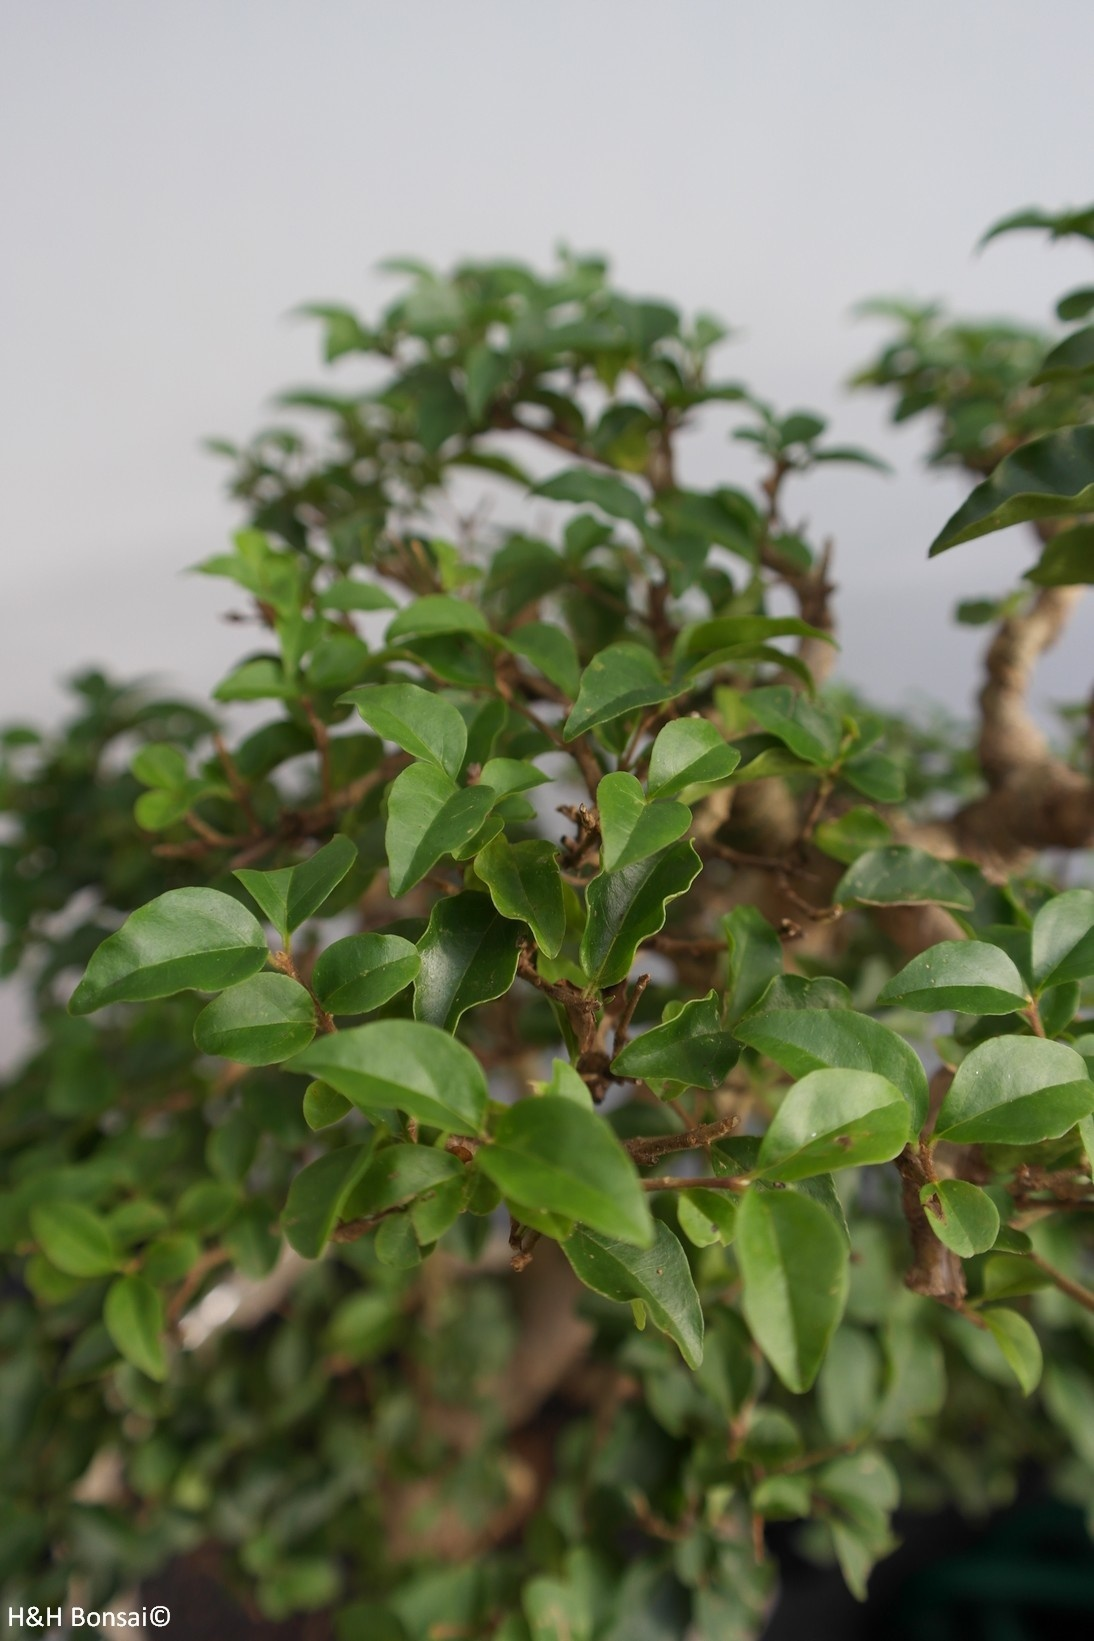 Bonsai Ligustrum sinense, nr. 7843